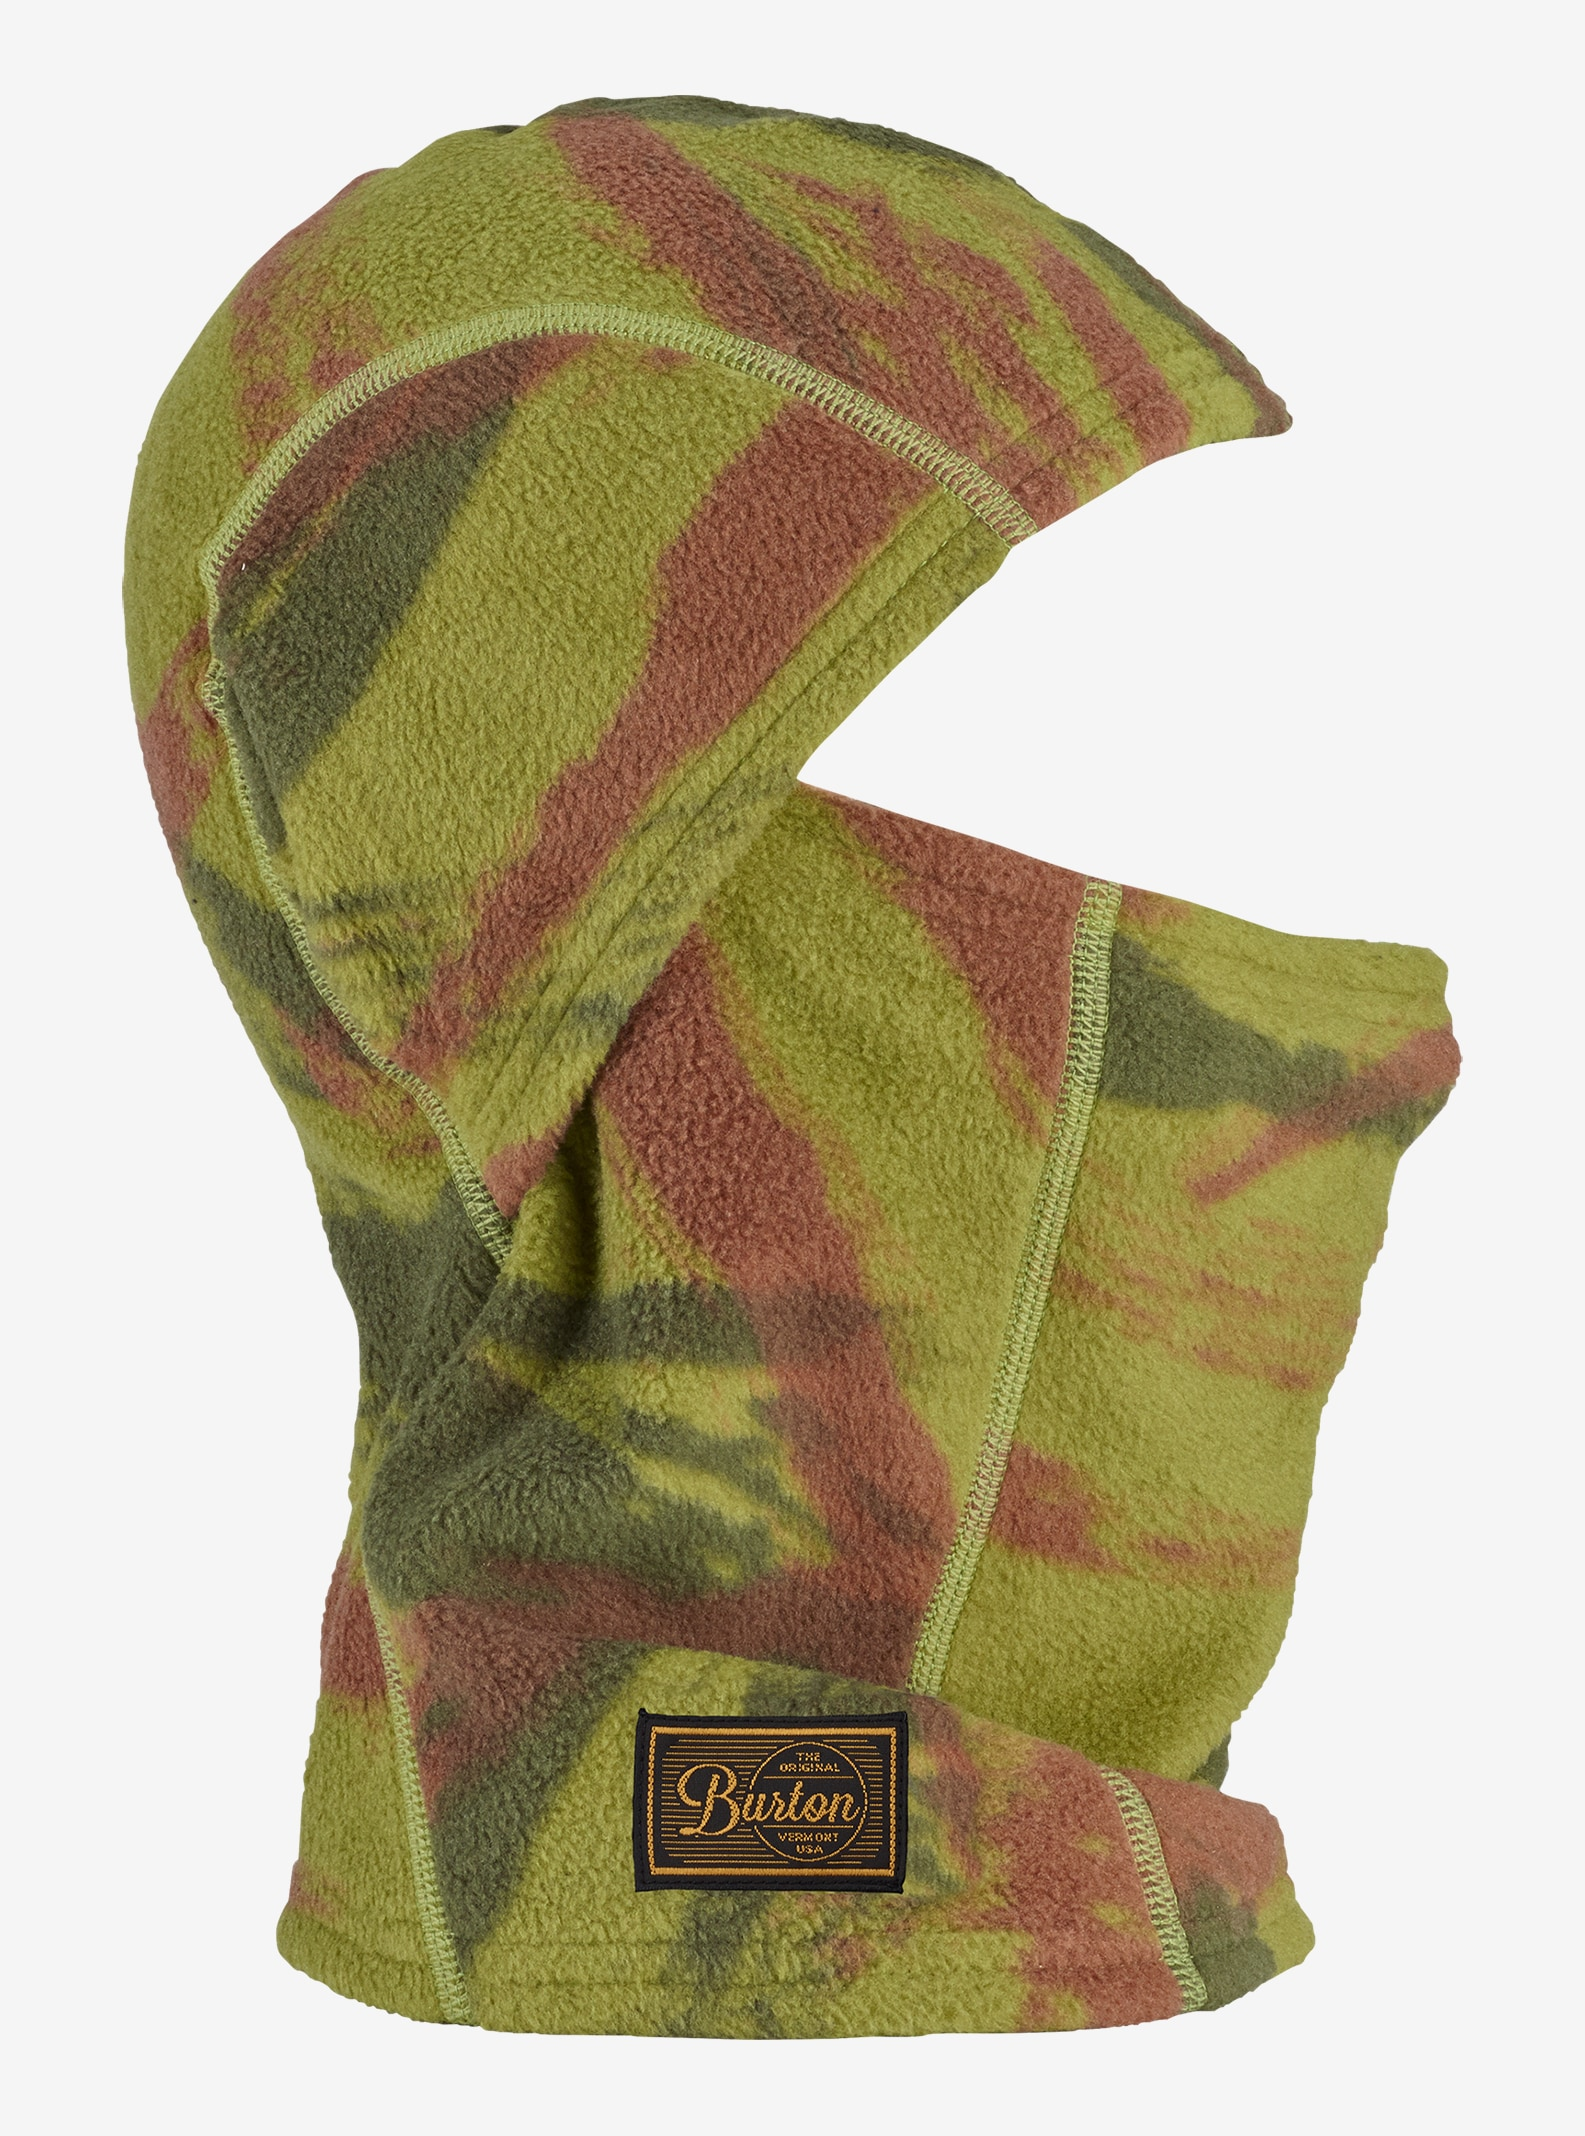 Burton Ember Fleece Balaclava shown in Brush Camo